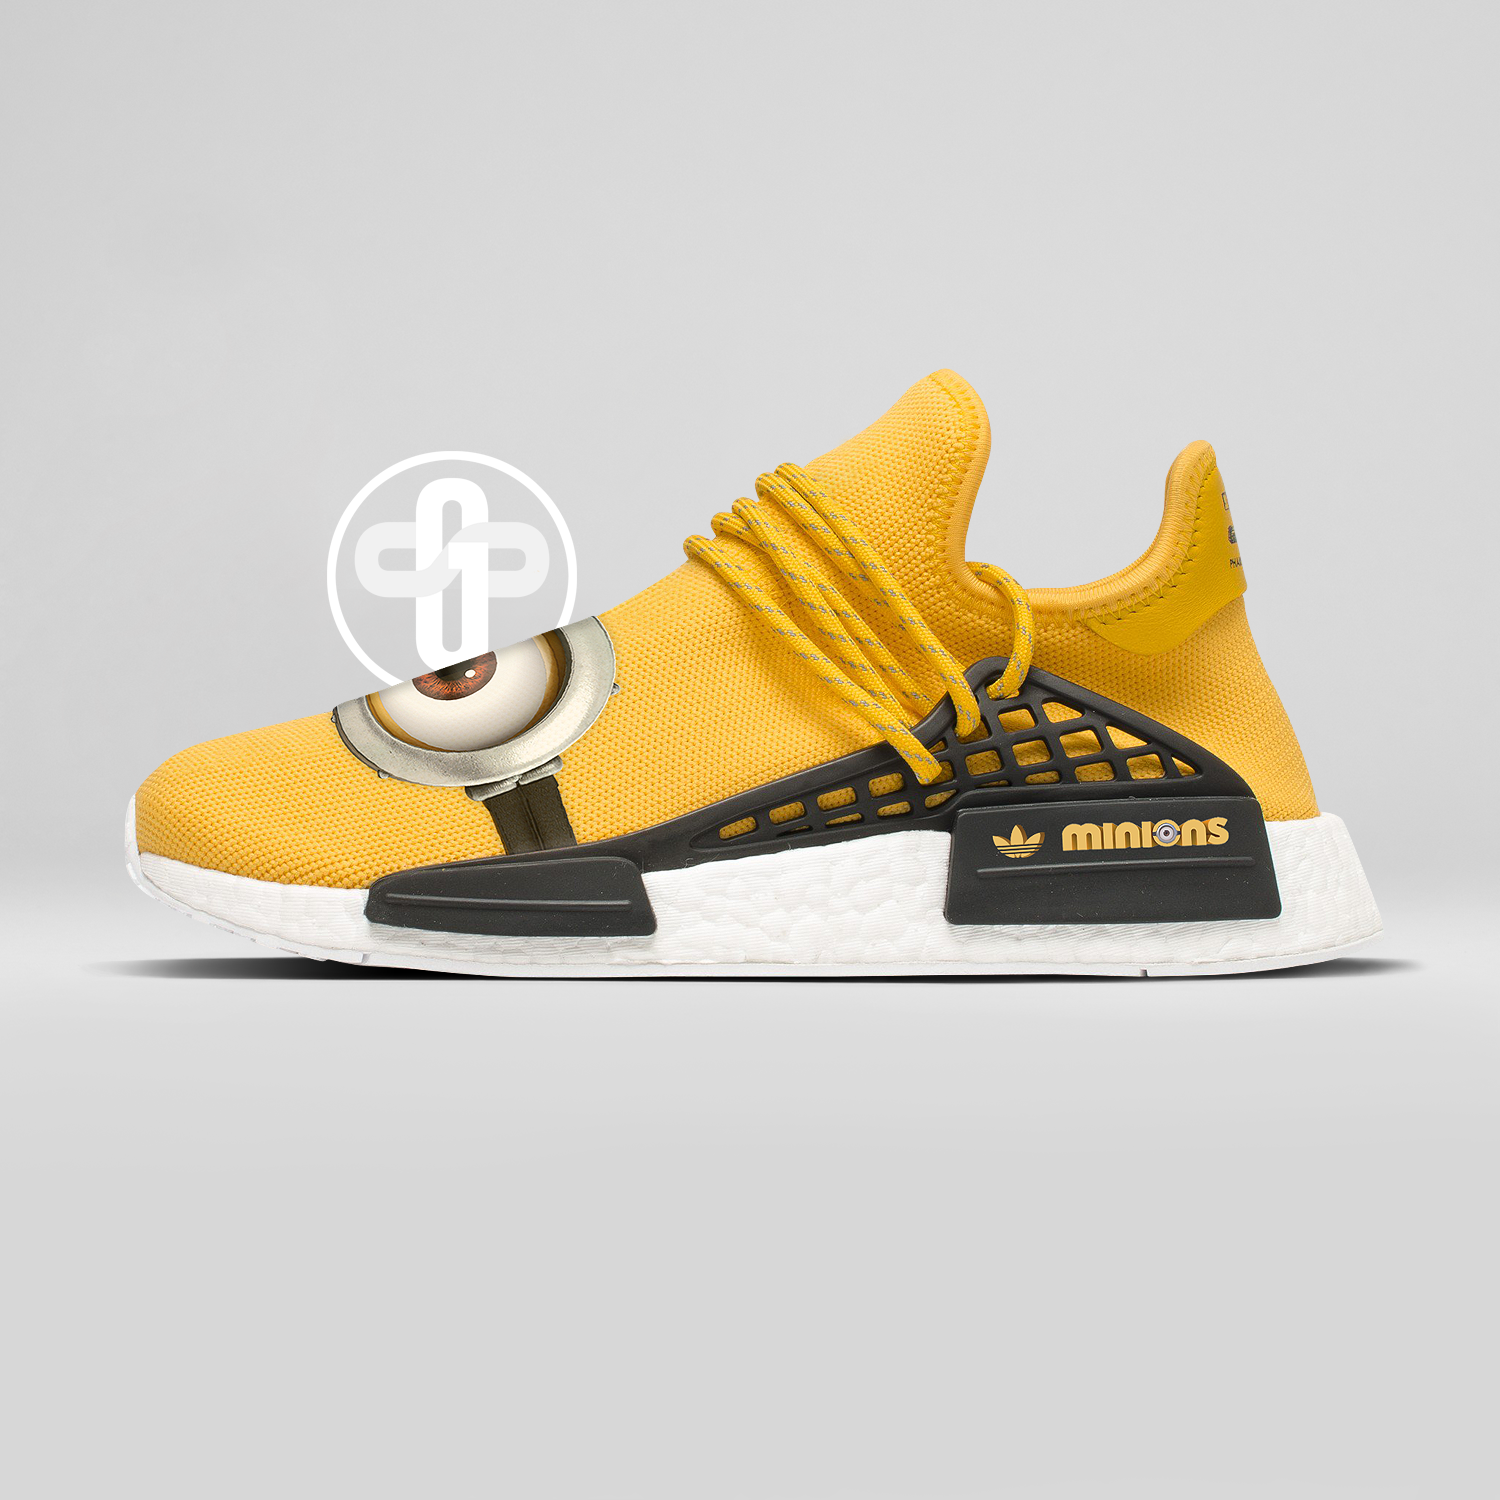 best sneakers cc15f ad2e9 Pharrell Williams x Les Minions x Adidas Hu NMD